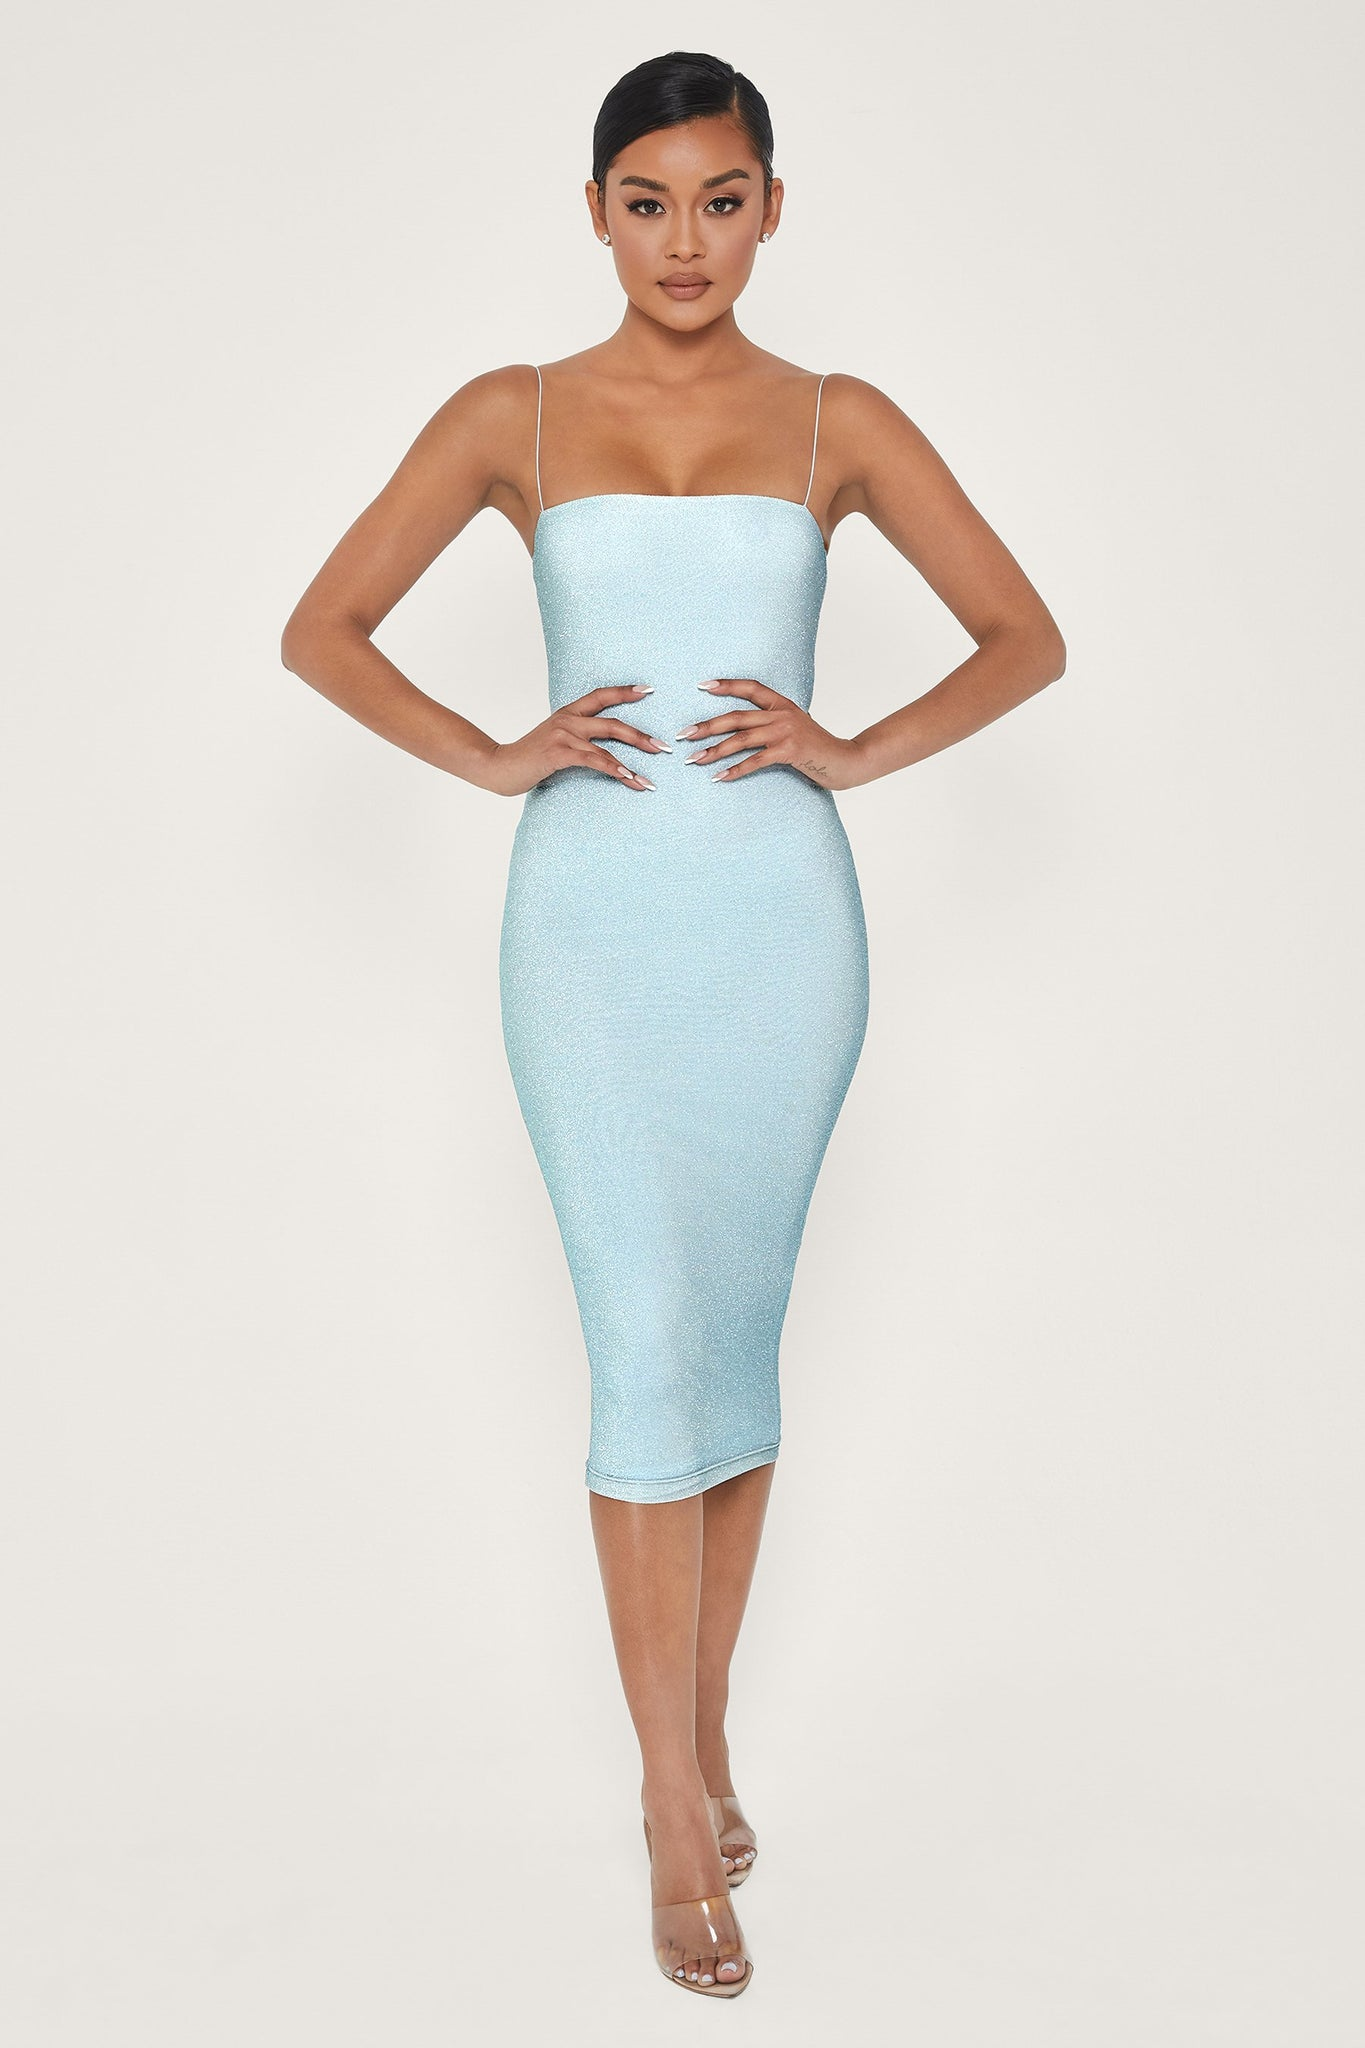 Jalia Shimmer Midi Dress - Baby Blue - MESHKI